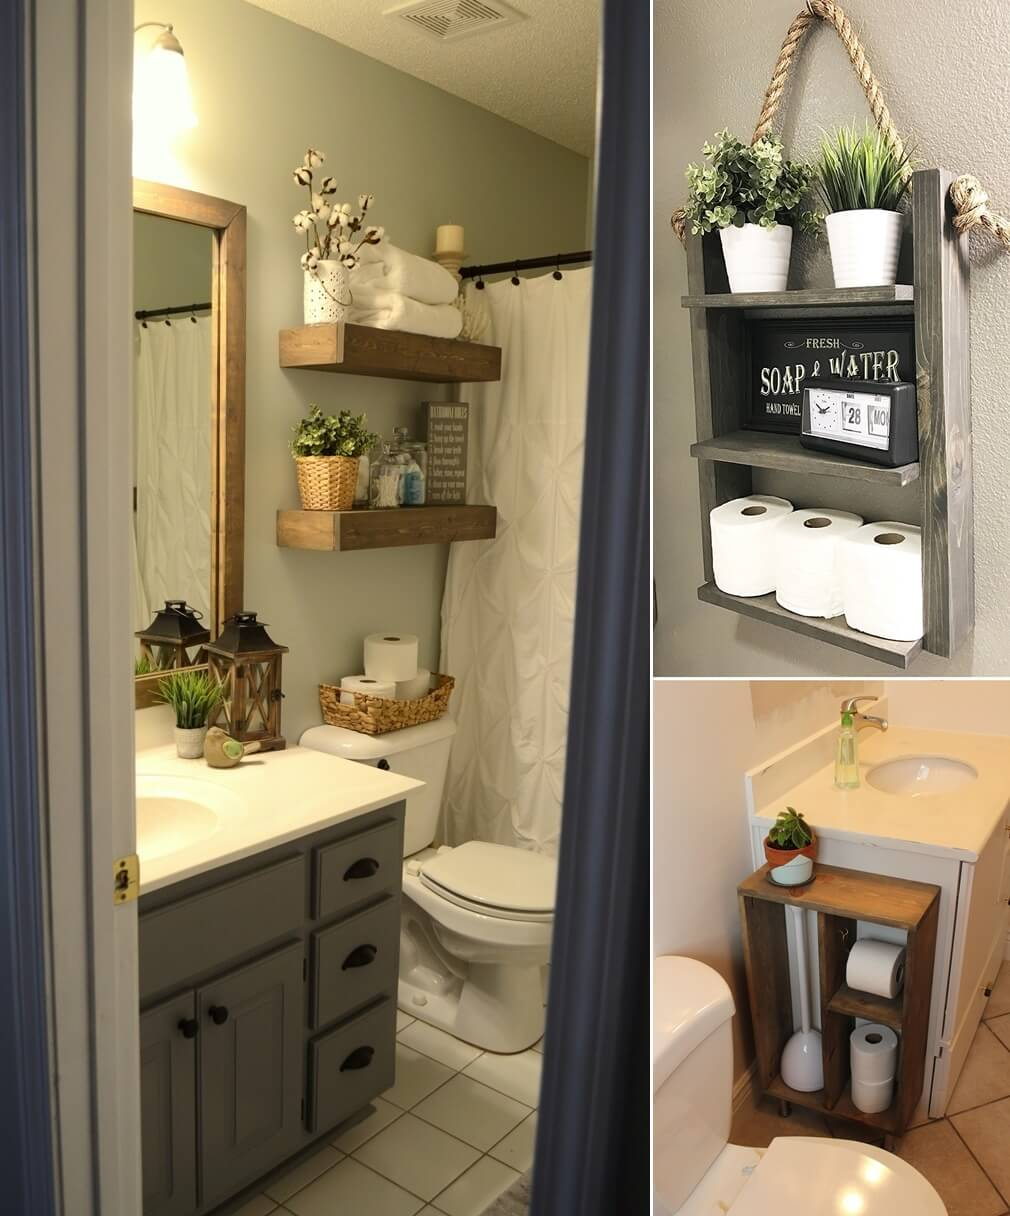 Little Decor Ideas To Make At Home: 10 DIY Wood Projects For Your Bathroom